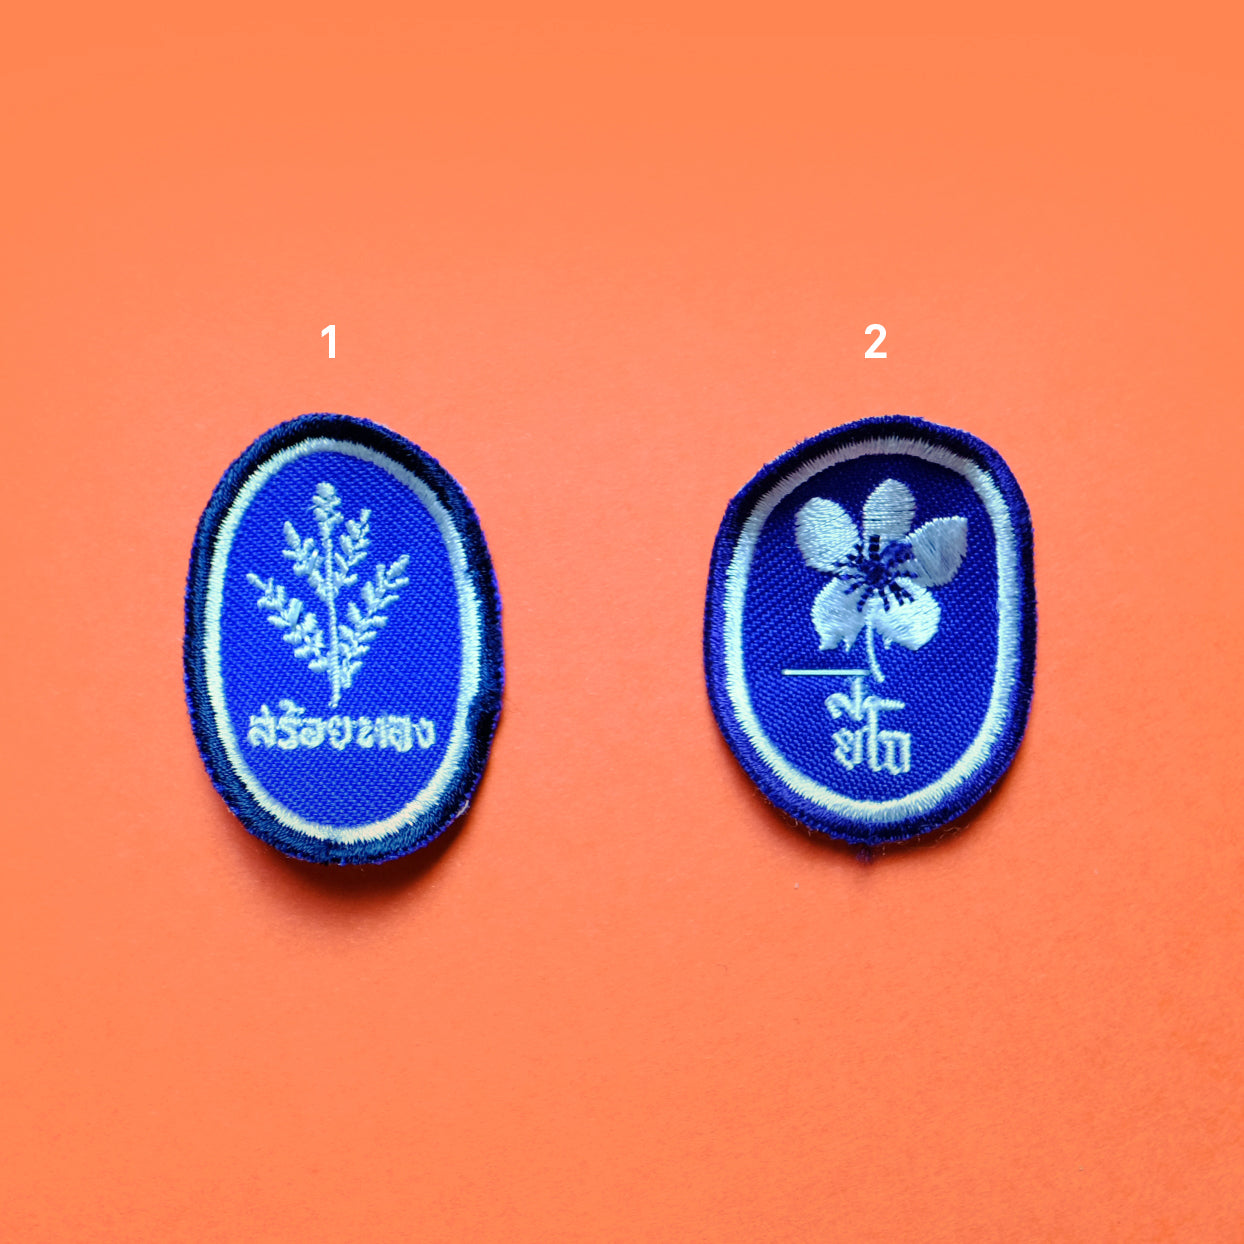 Scout patch collection1 - Summer Made